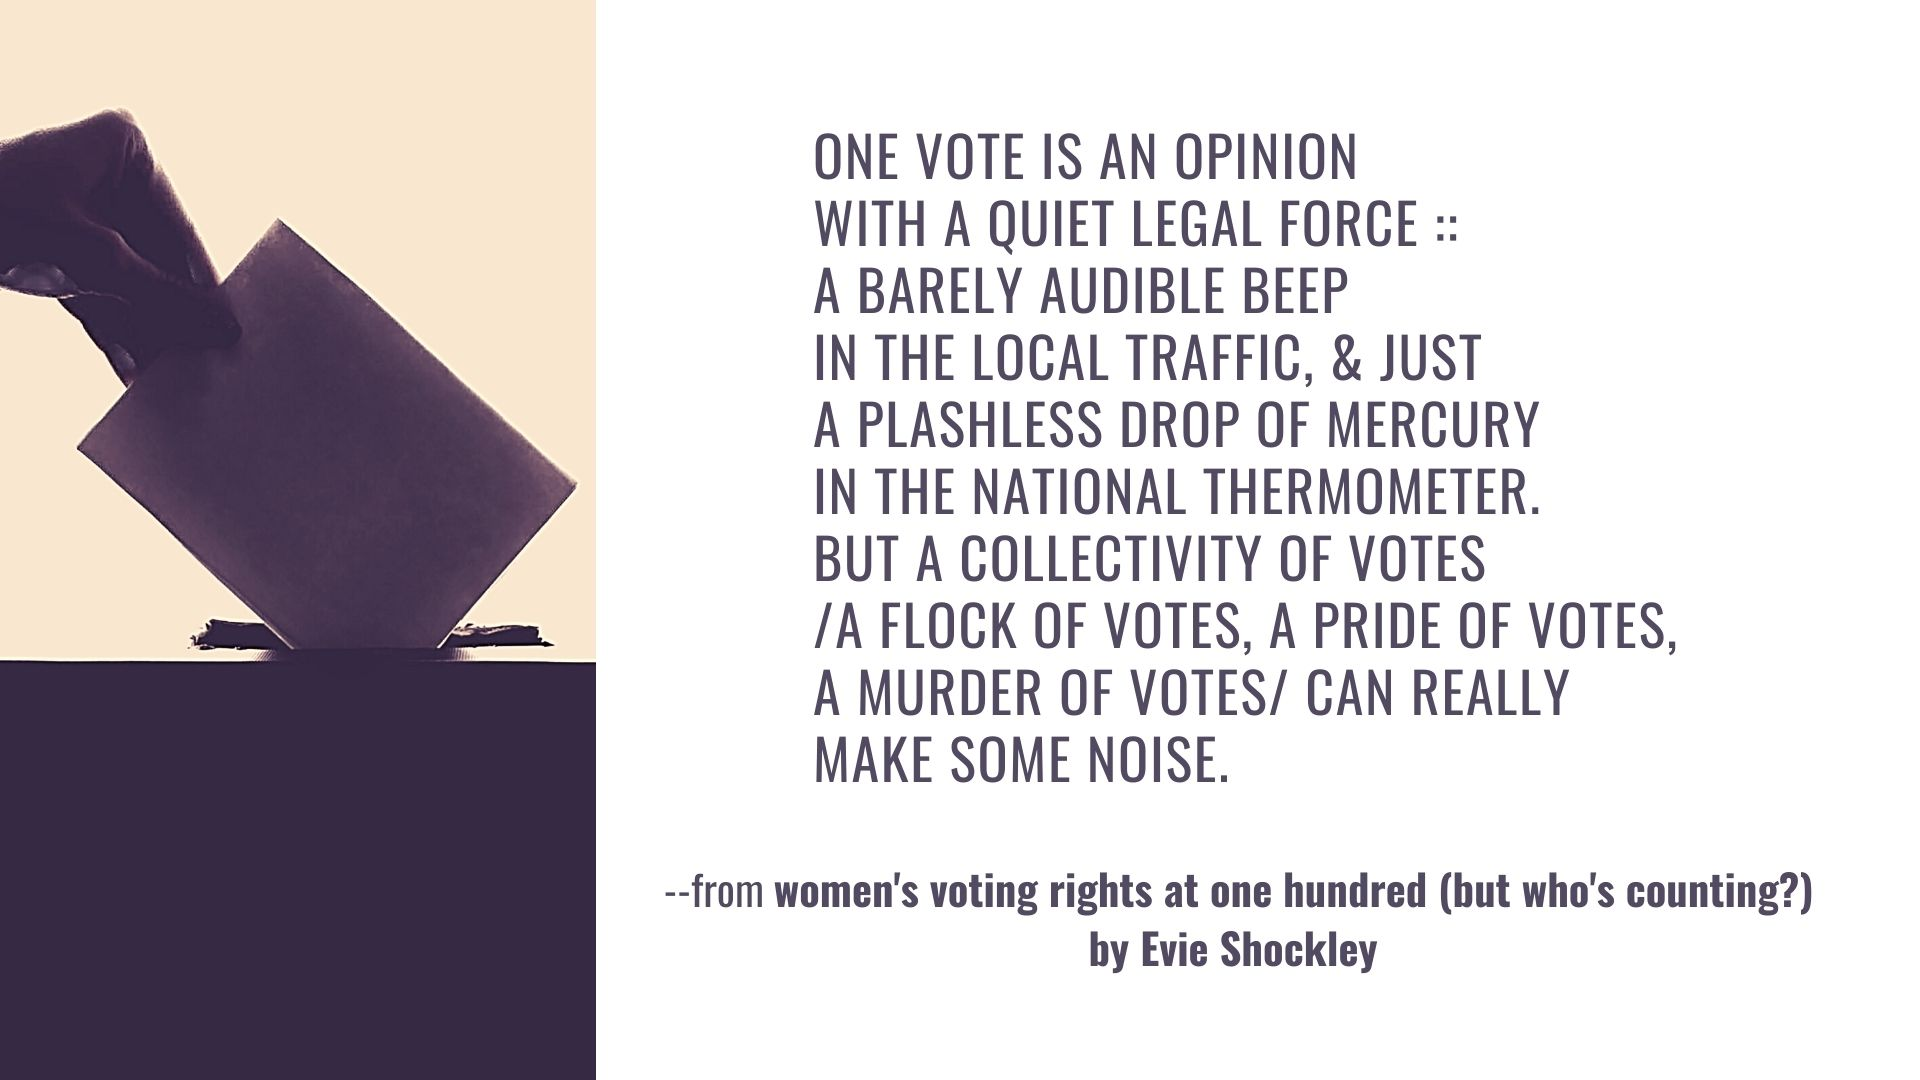 one vote is an opinion with a quiet legal force :: a barely audible beep in the local traffic, & just a plashless drop of mercury in the national thermometer. but a collectivity of votes /a flock of votes, a pride of votes, a murder of votes/ can really make some noise. Quote from Evie Shockley